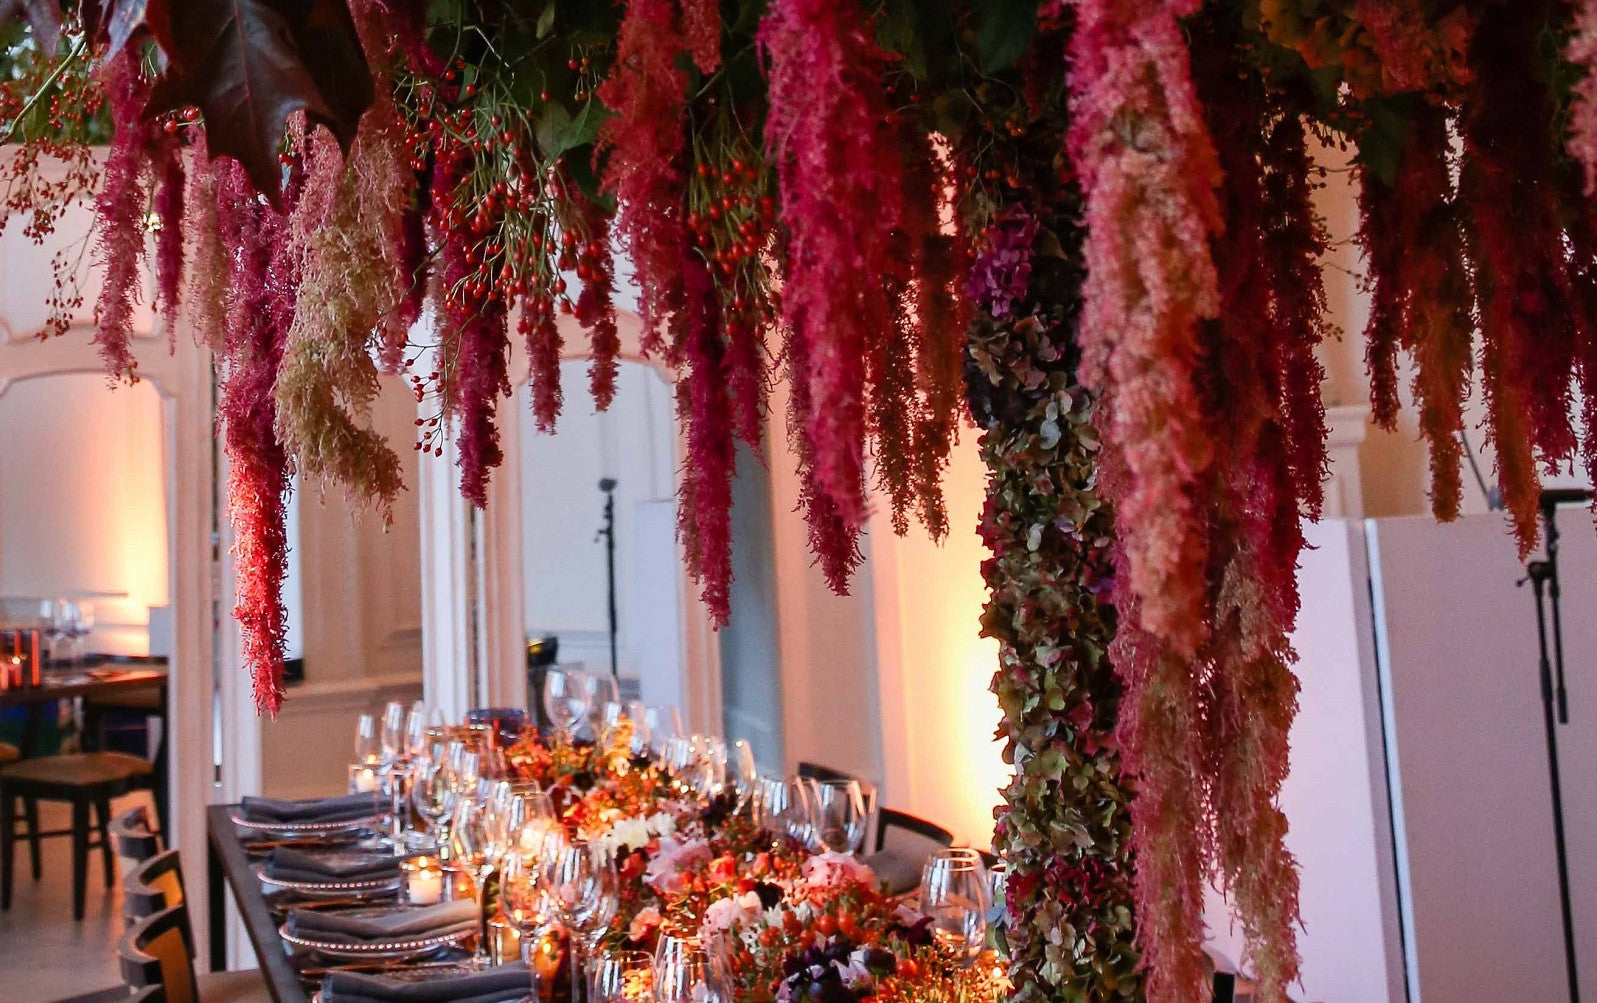 Autumnal Opulence at Kensington Palace